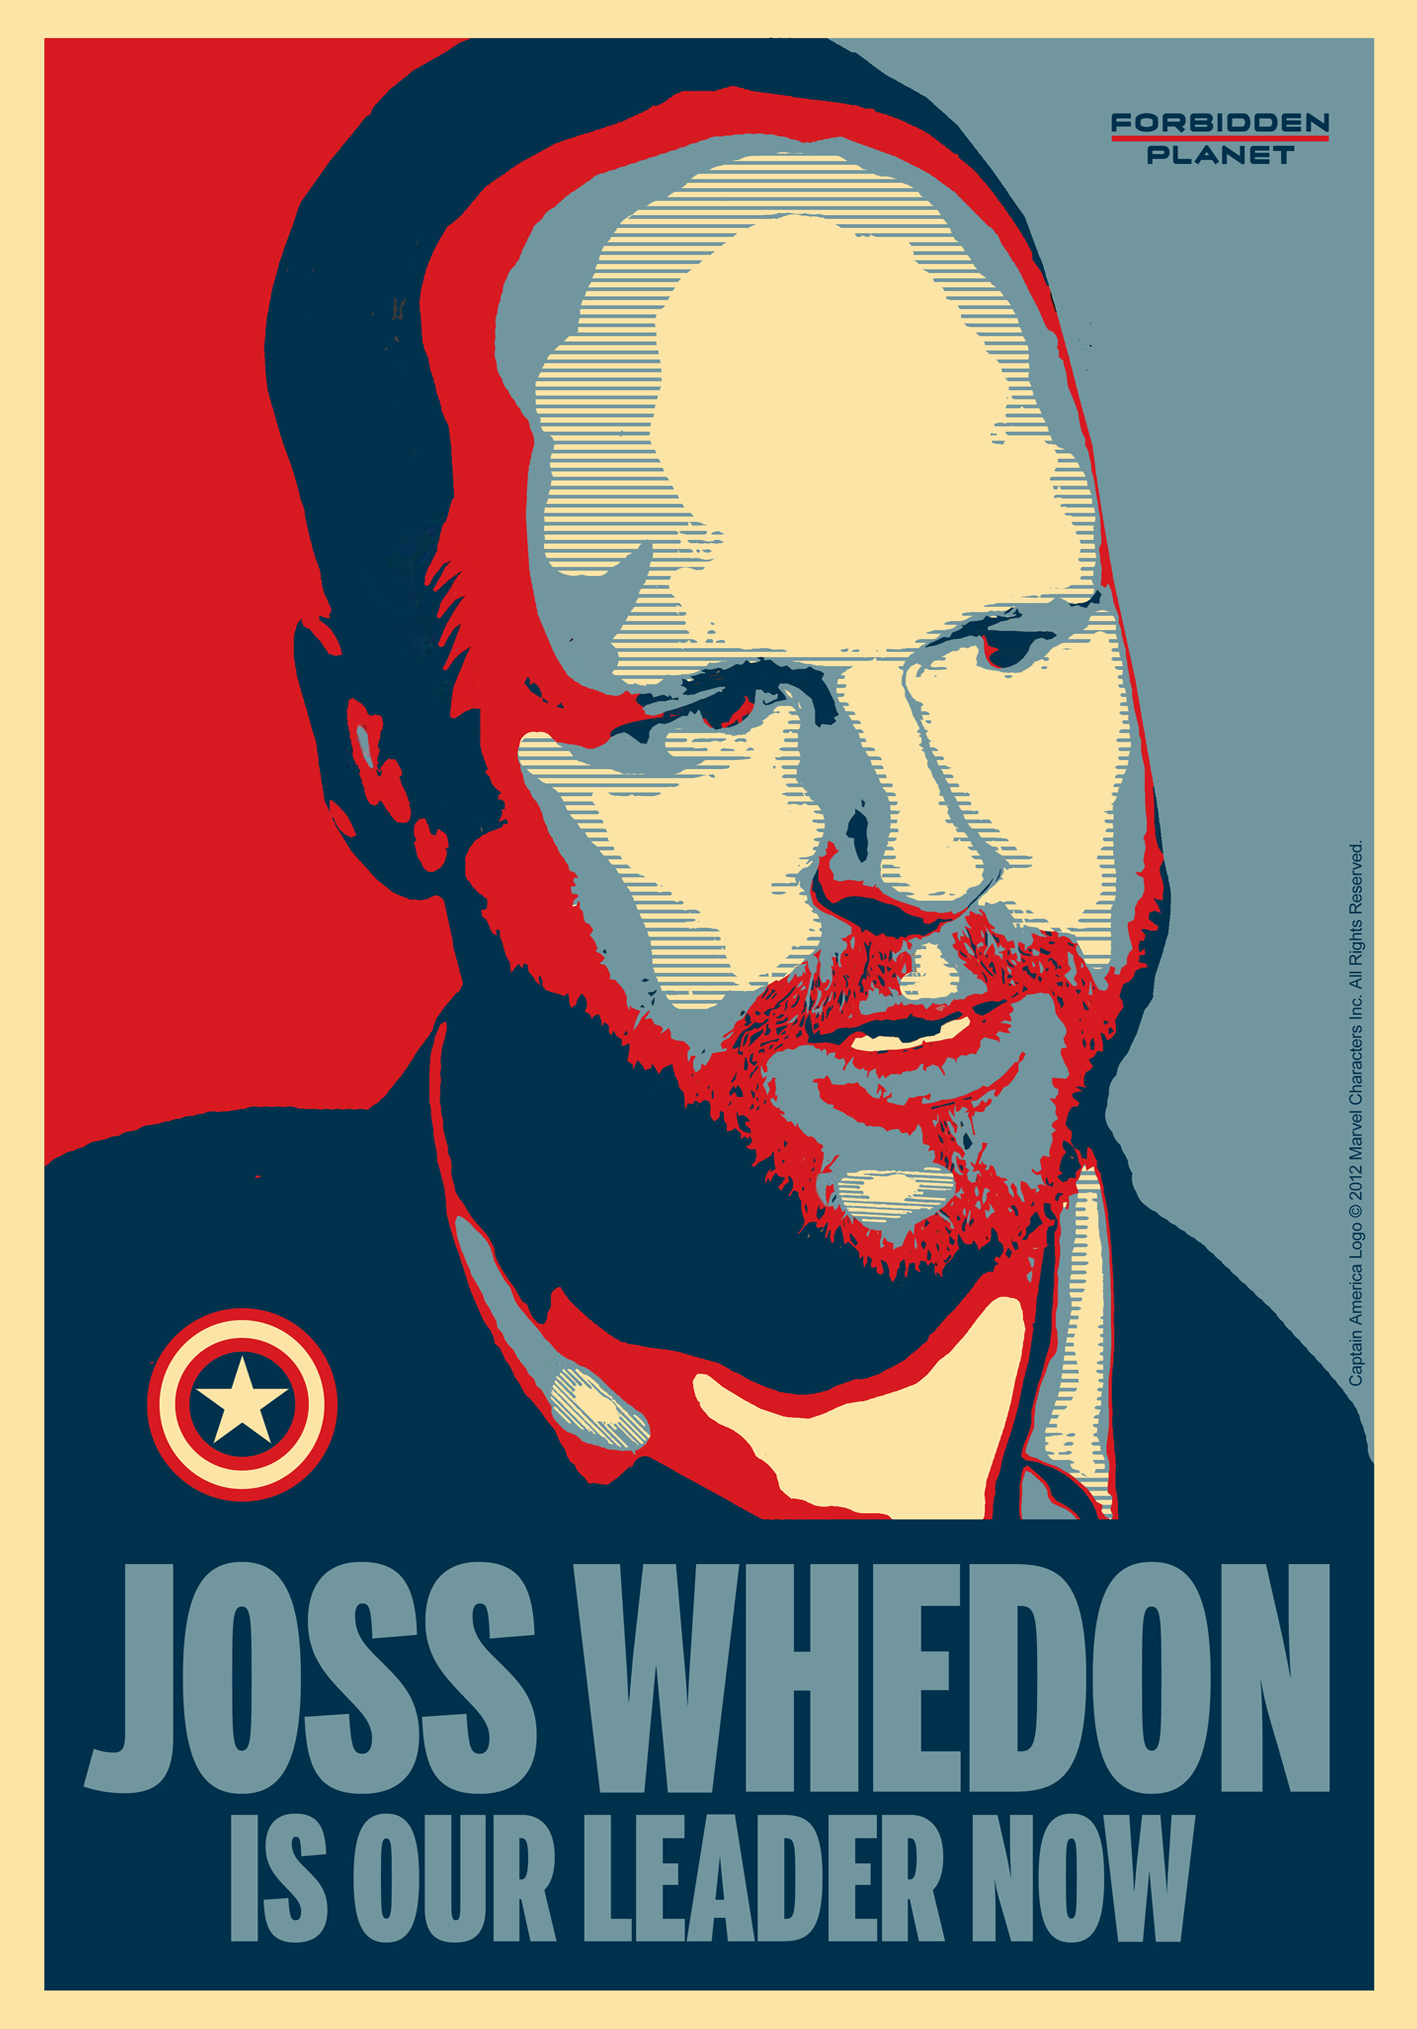 Joss-Whedon-is-our-leader-now